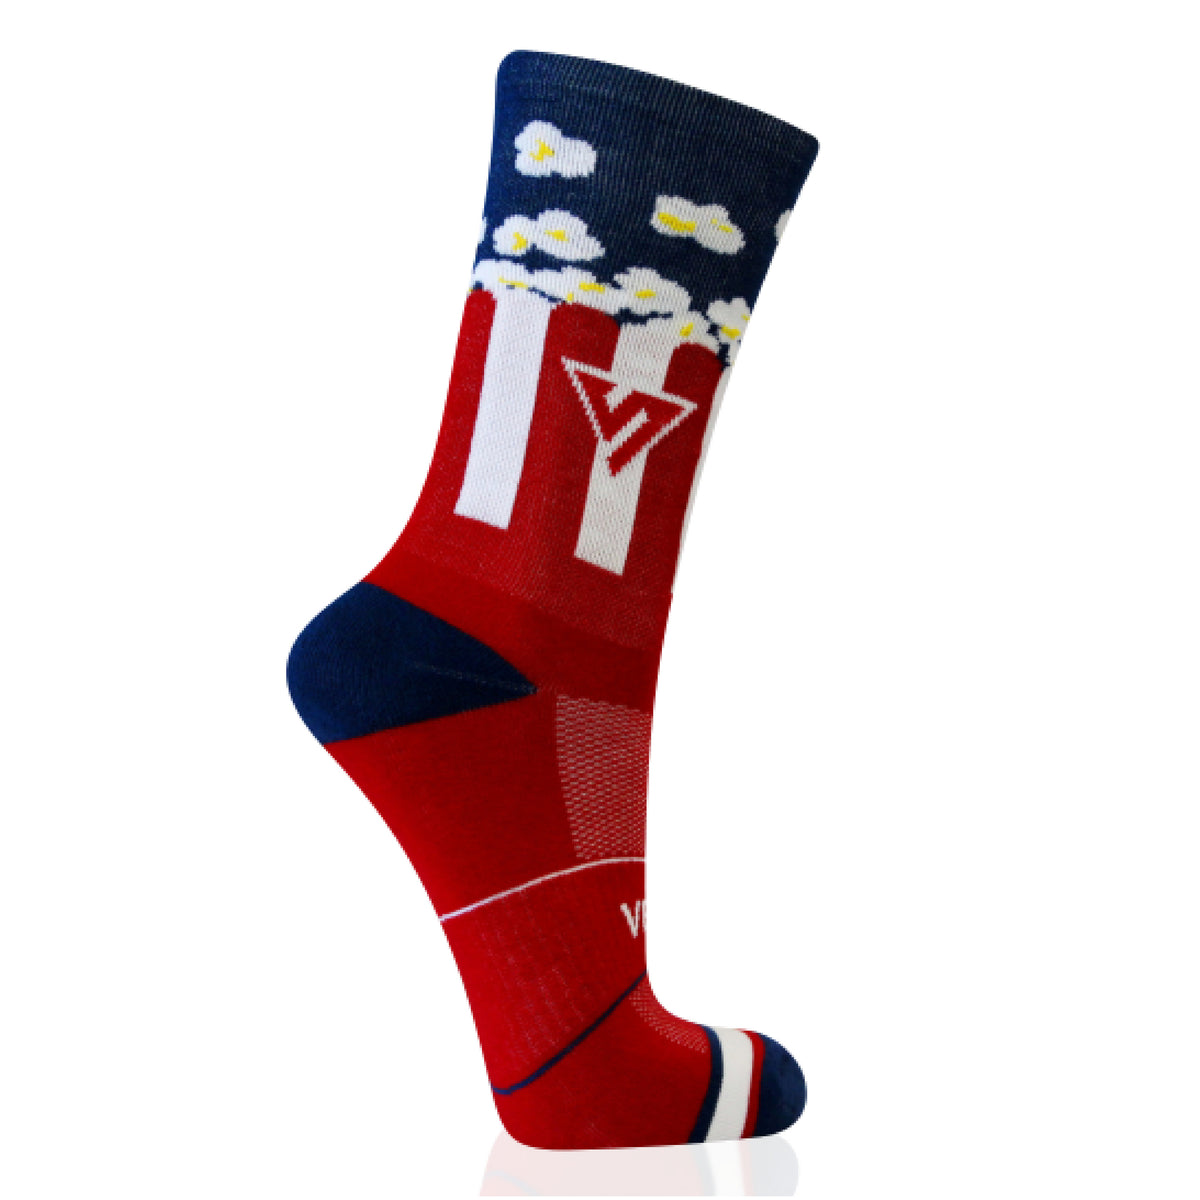 Versus Popcorn Performance Active Socks